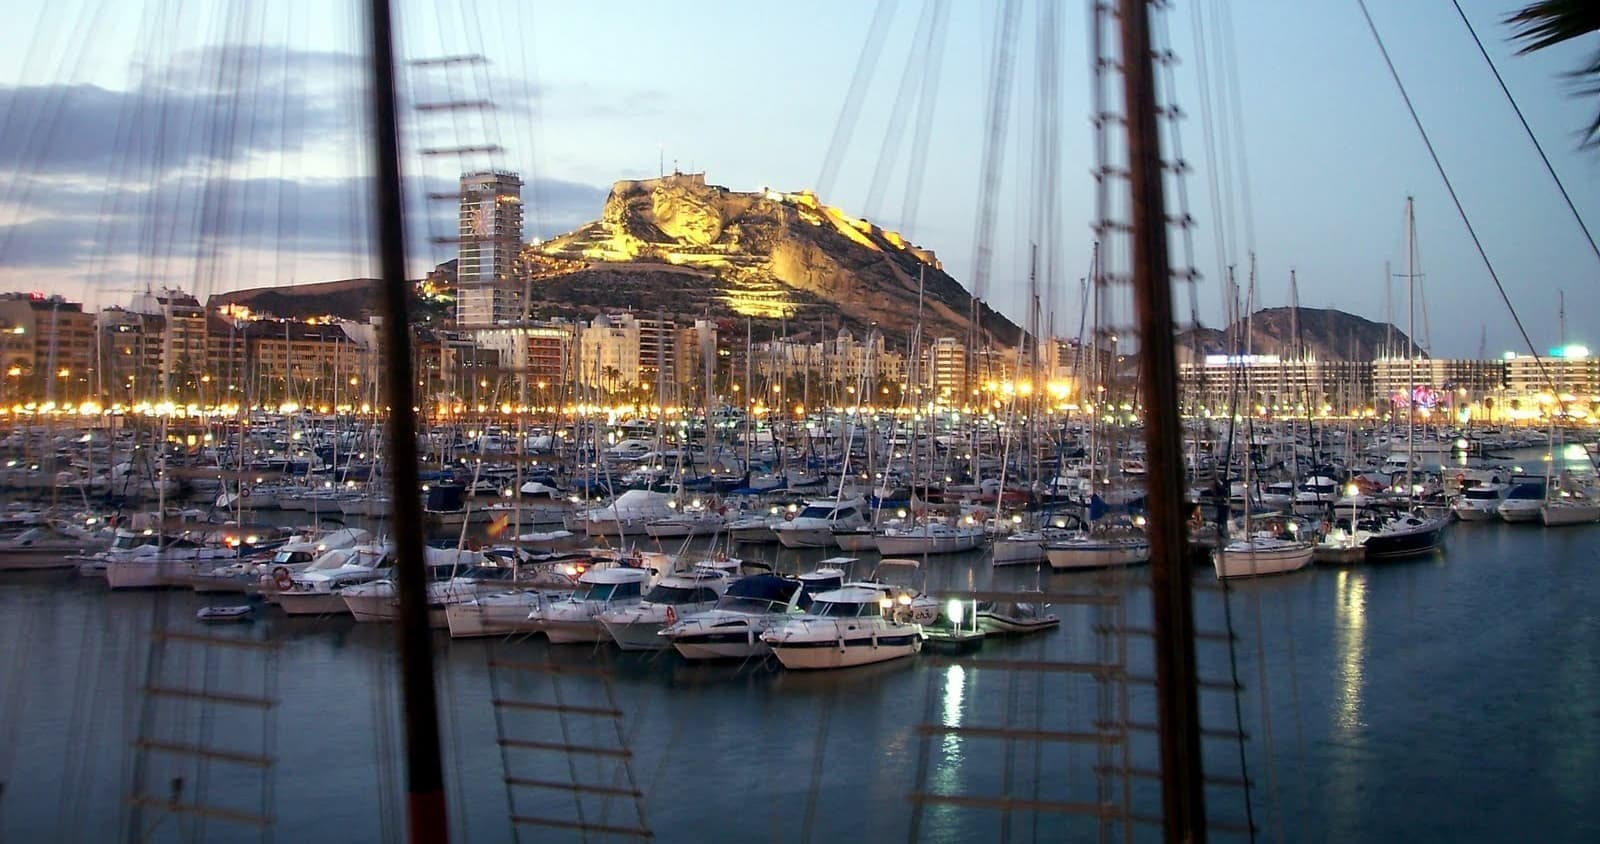 View of the port of Alicante from the venue